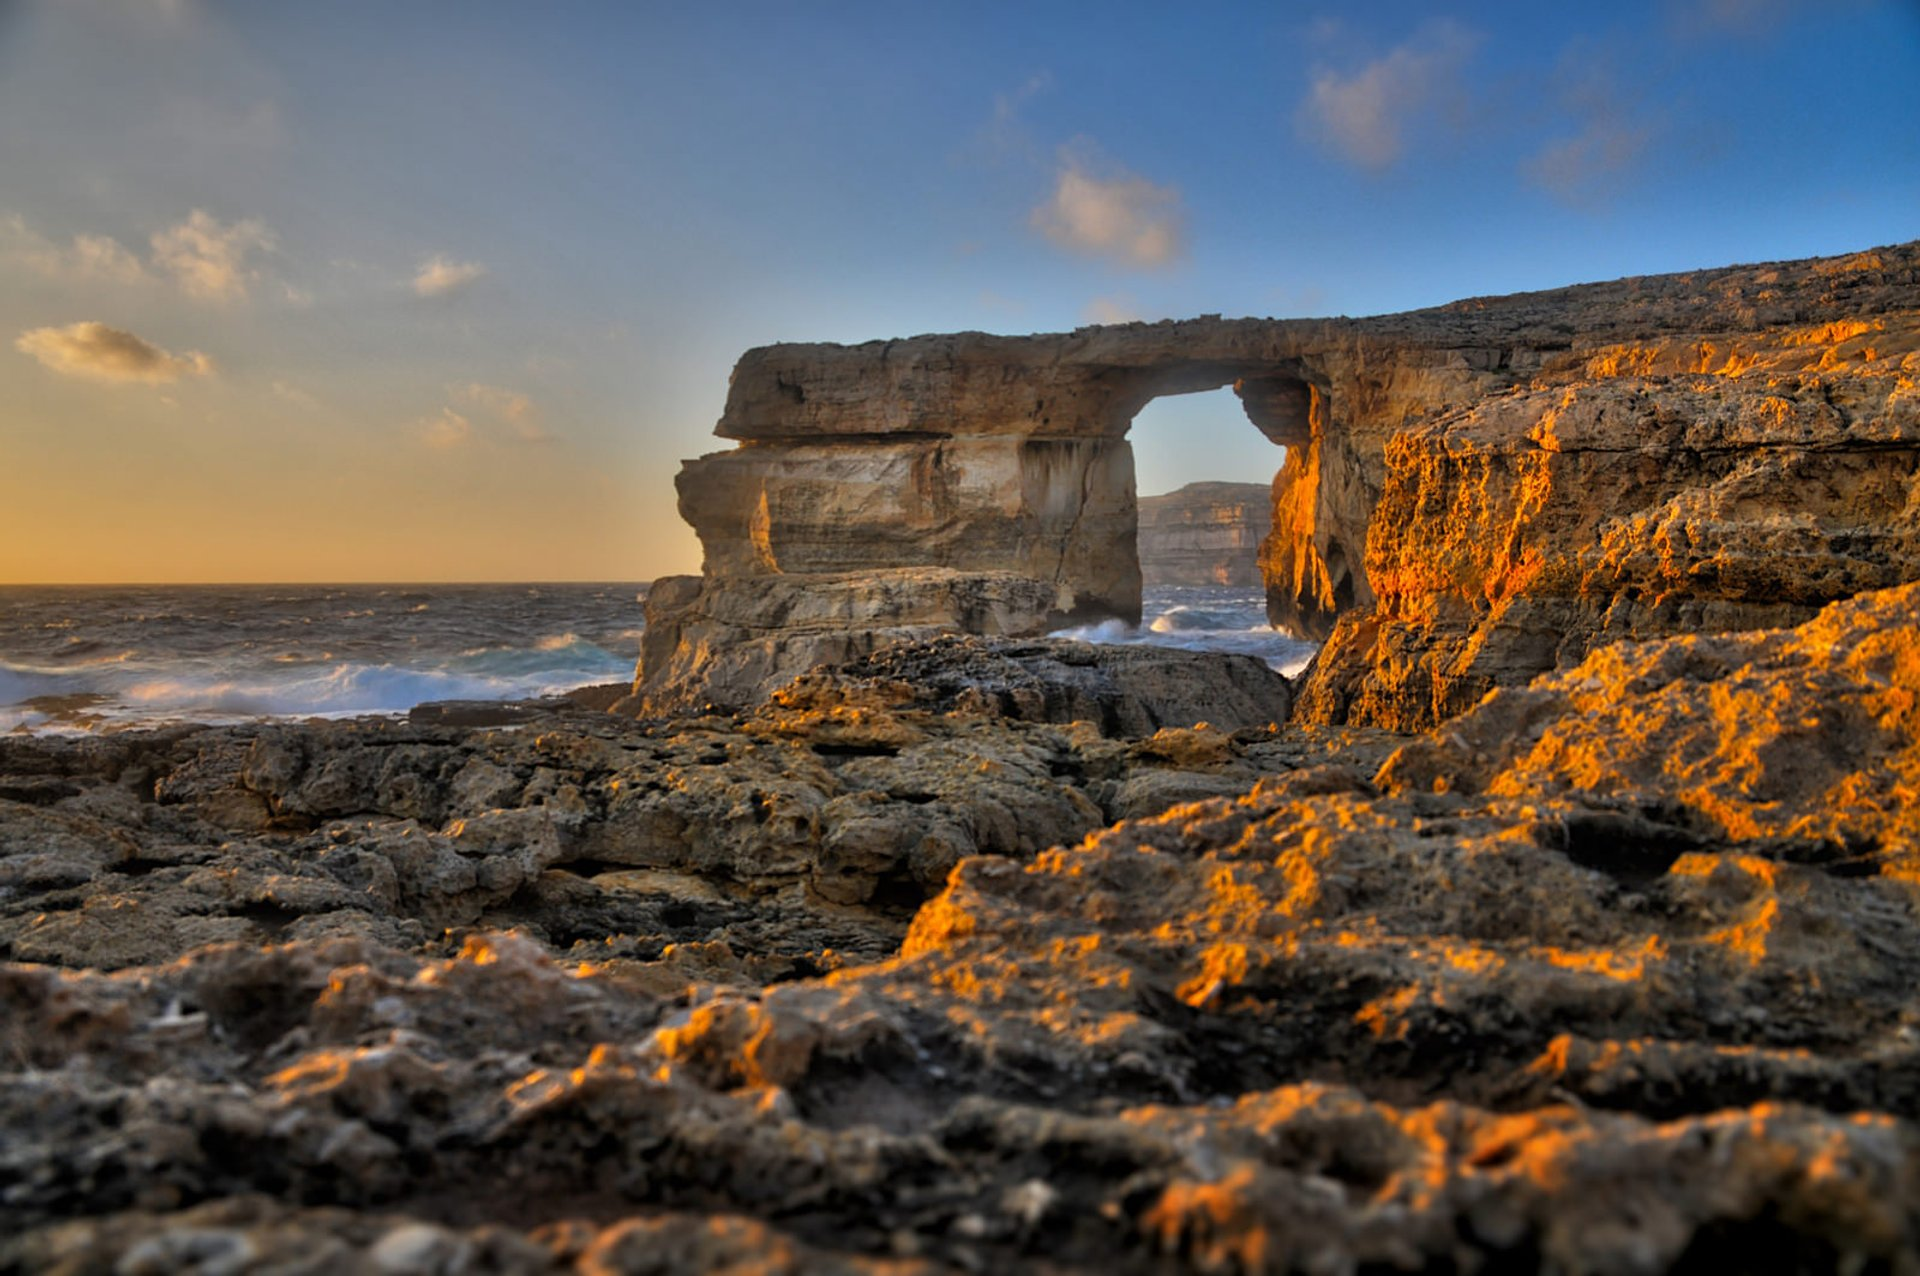 Sunset at Azure Window in Malta 2020 - Best Time